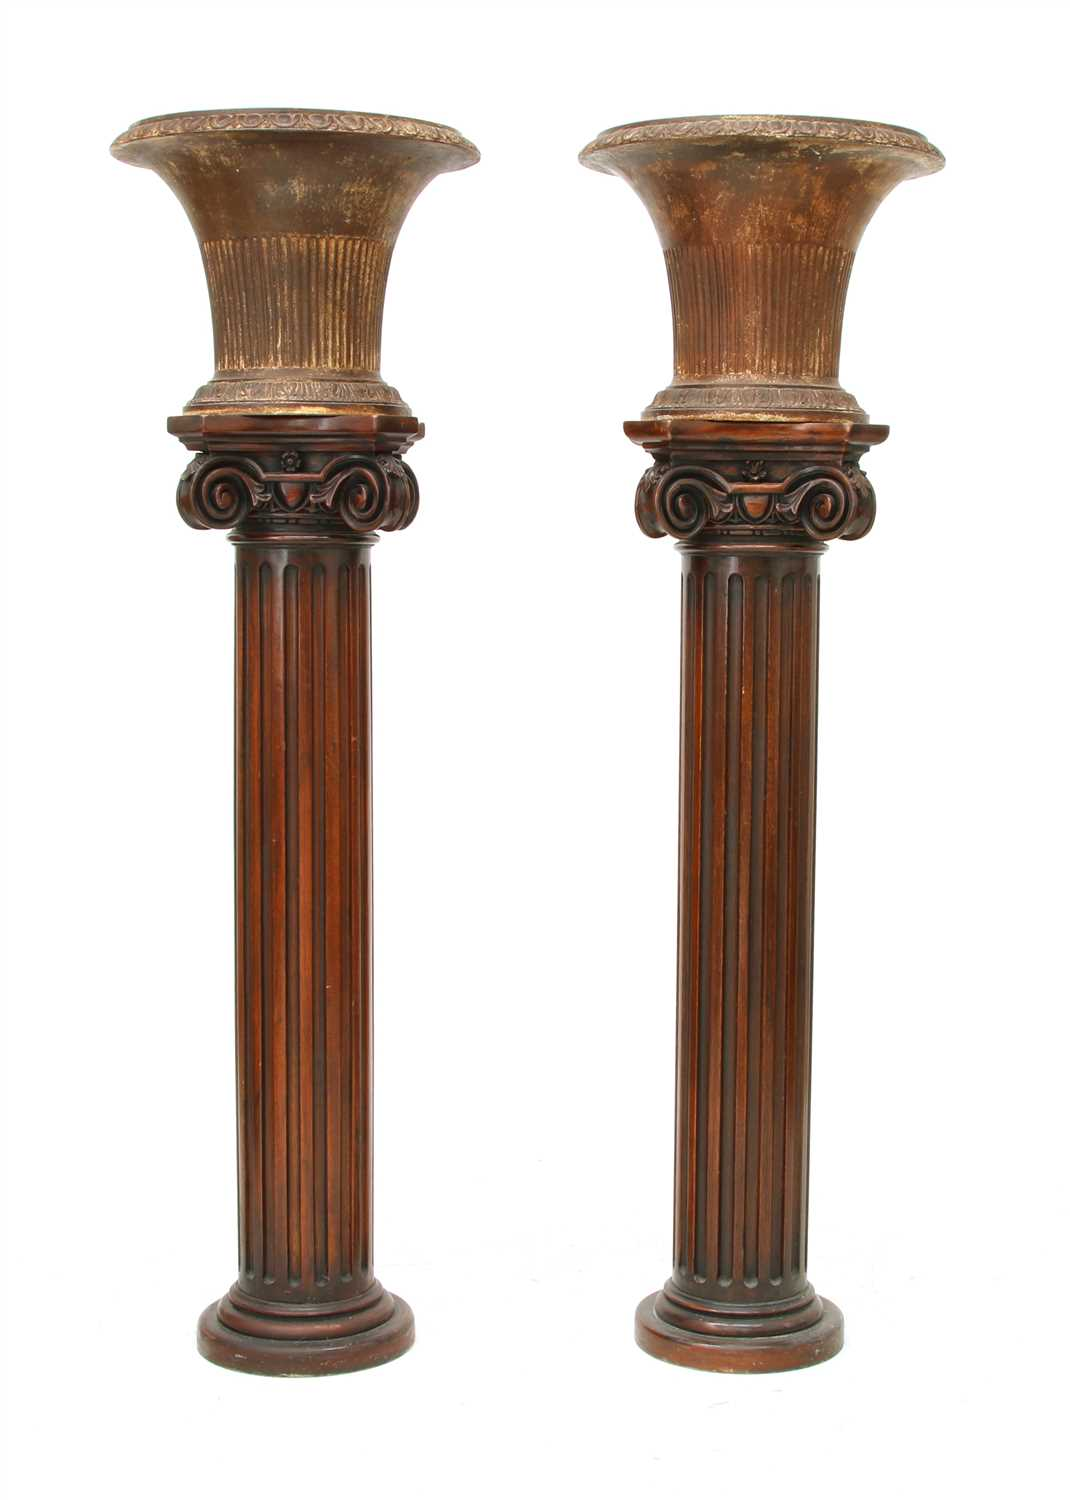 Lot 52 - A pair of iron urns